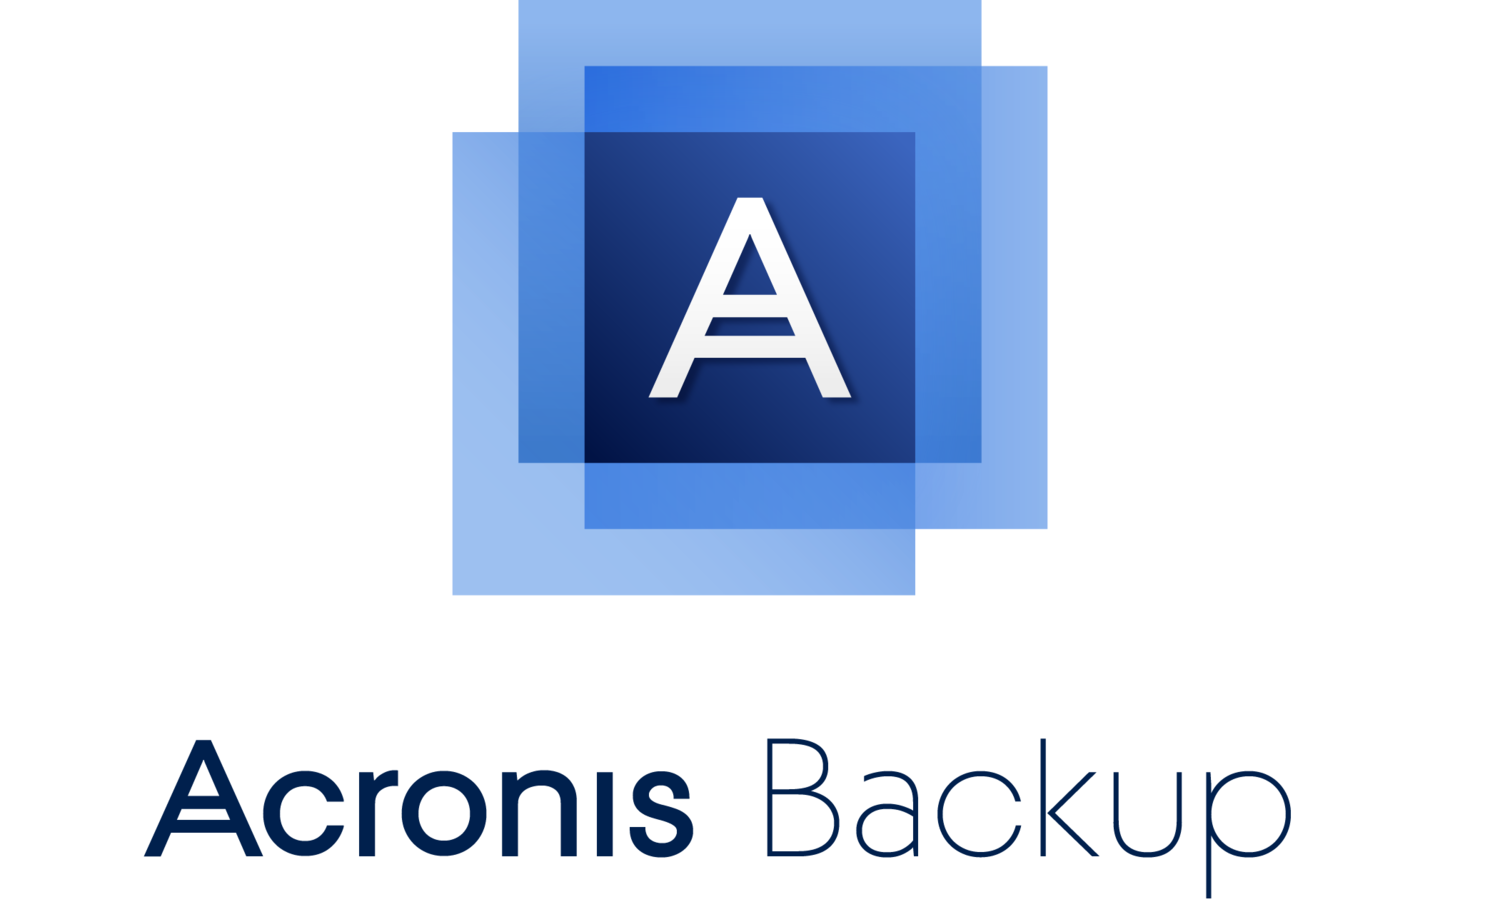 Acronis Cyber Backup Cloud for Enterprise Office 365 Subscription License 5 Seats, 1 Year